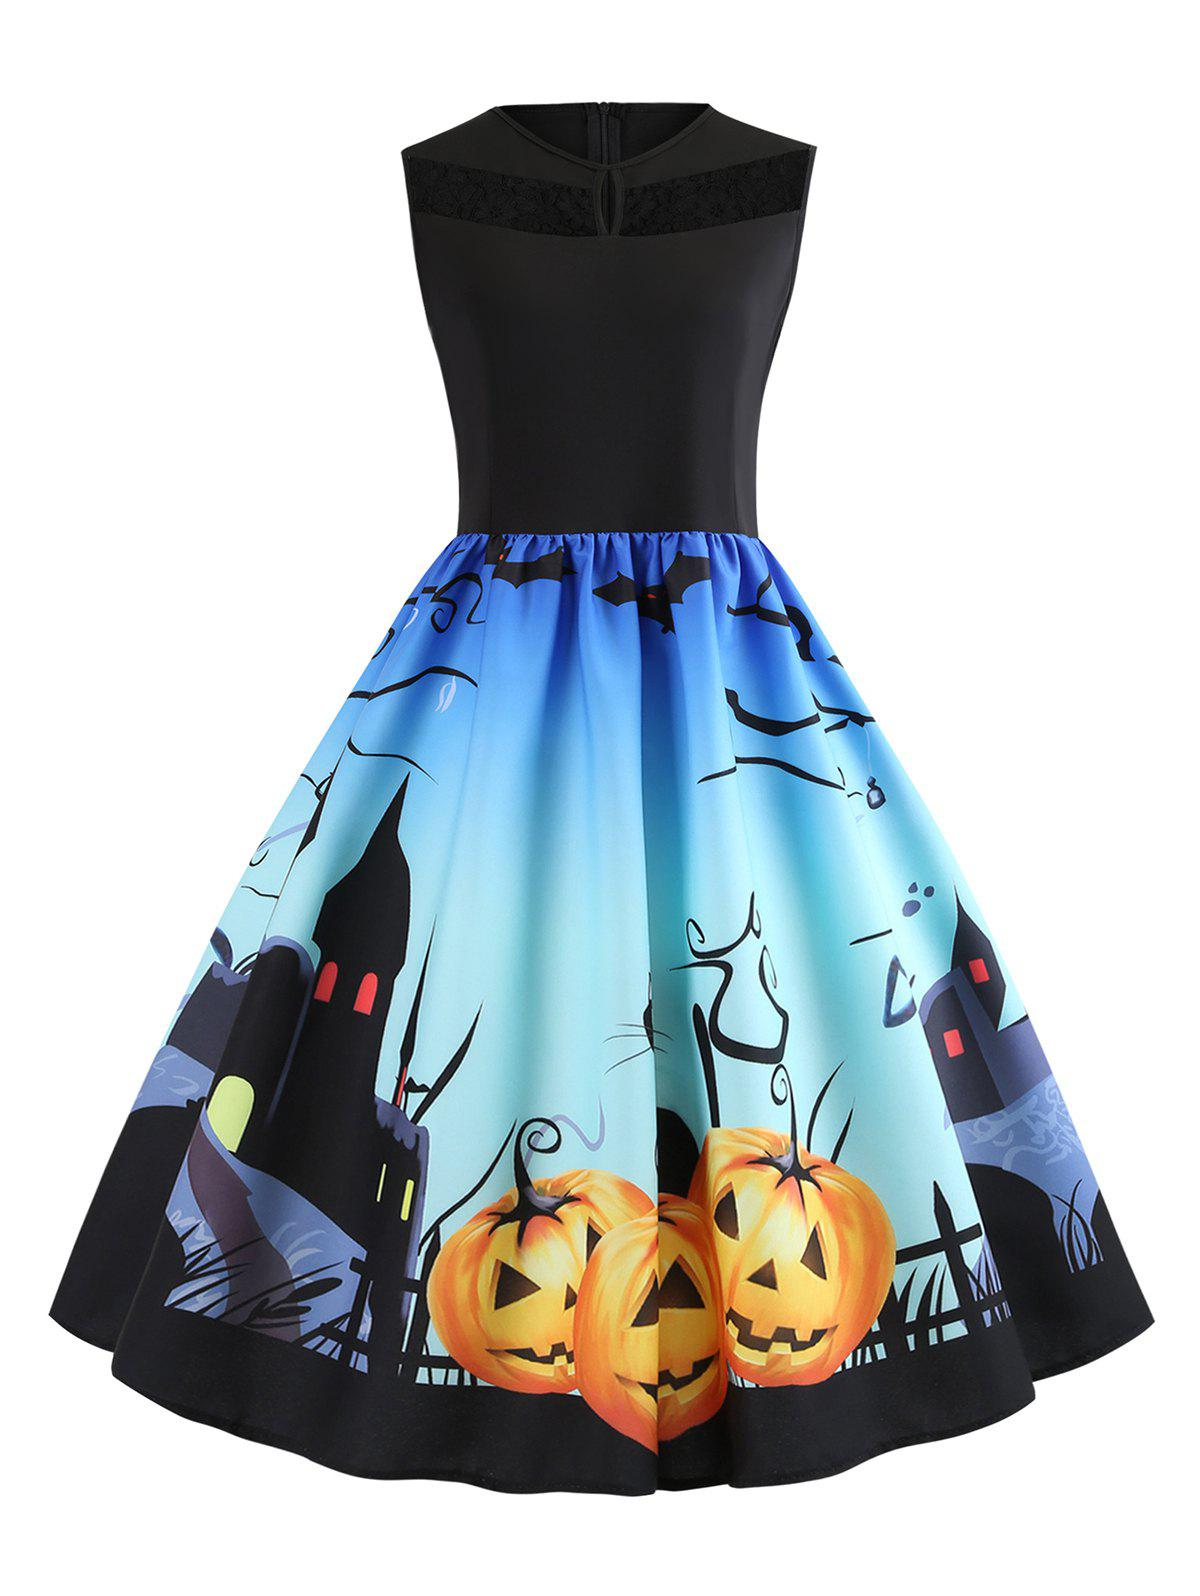 Lace Panel Bat Pumpkin Ombre Halloween Dress - multicolor XL